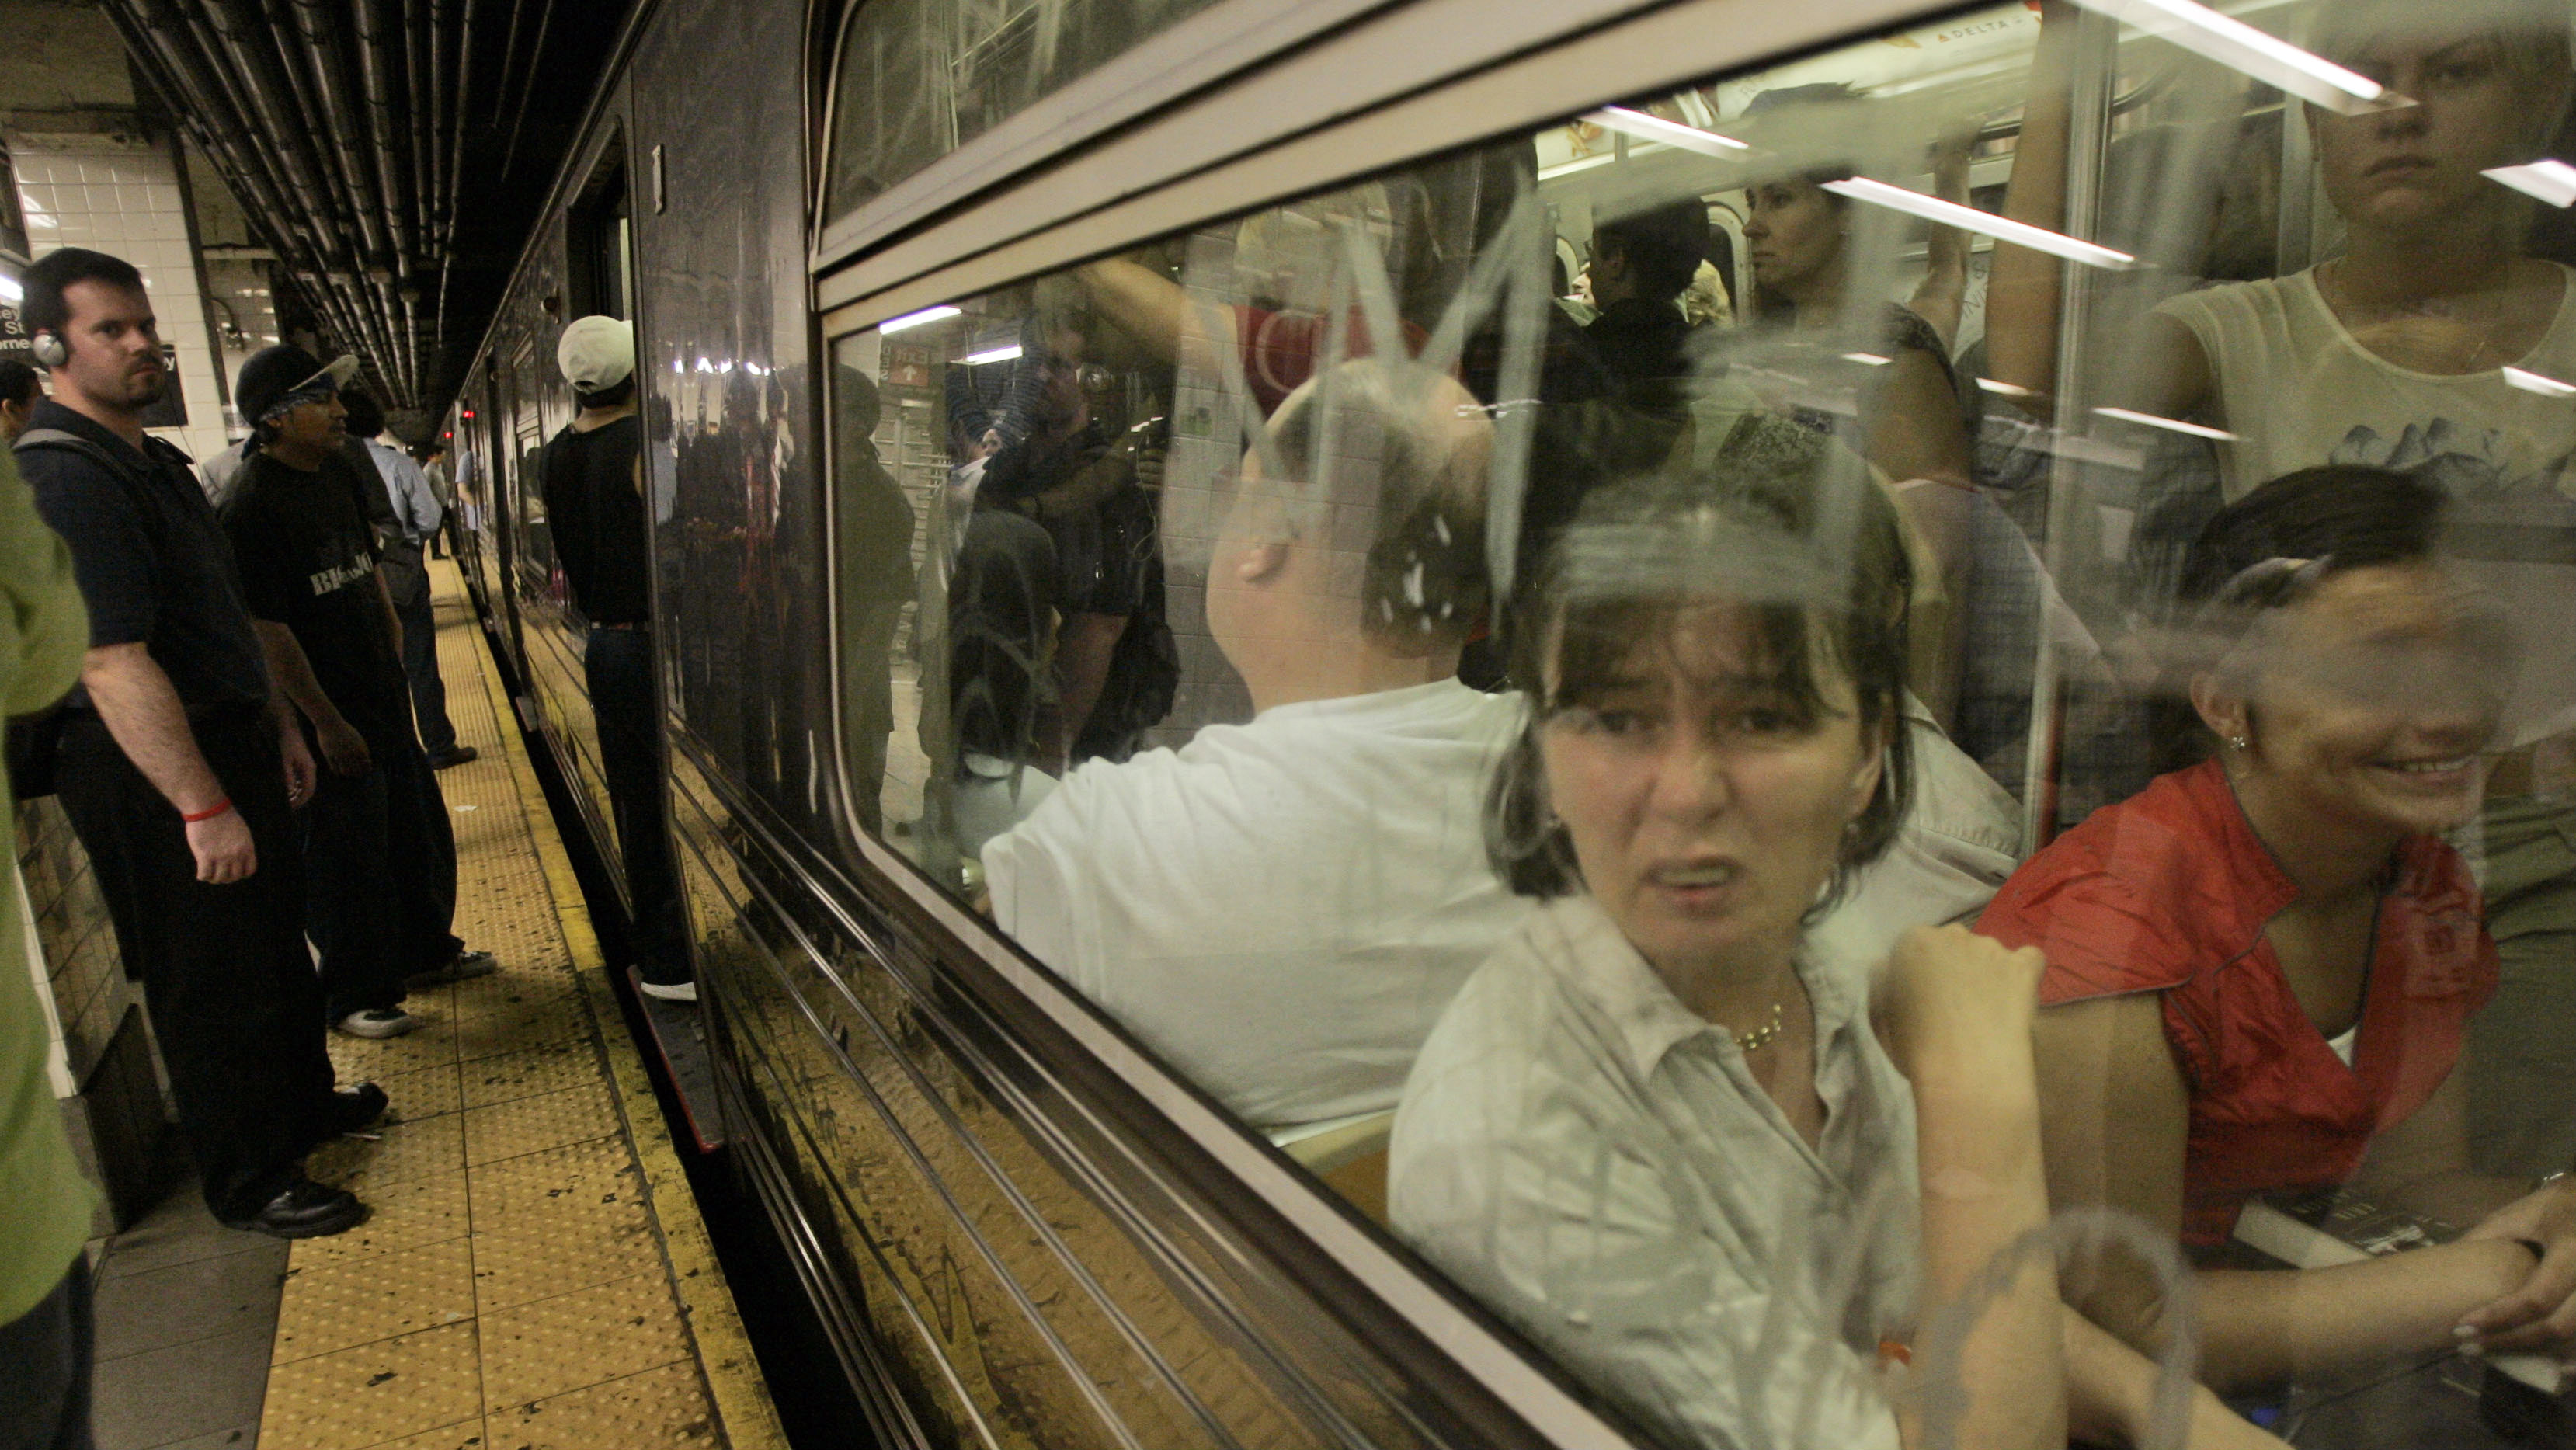 Morning commuters board a crowded uptown F train Wednesday, Aug. 8, 2007 in New York.